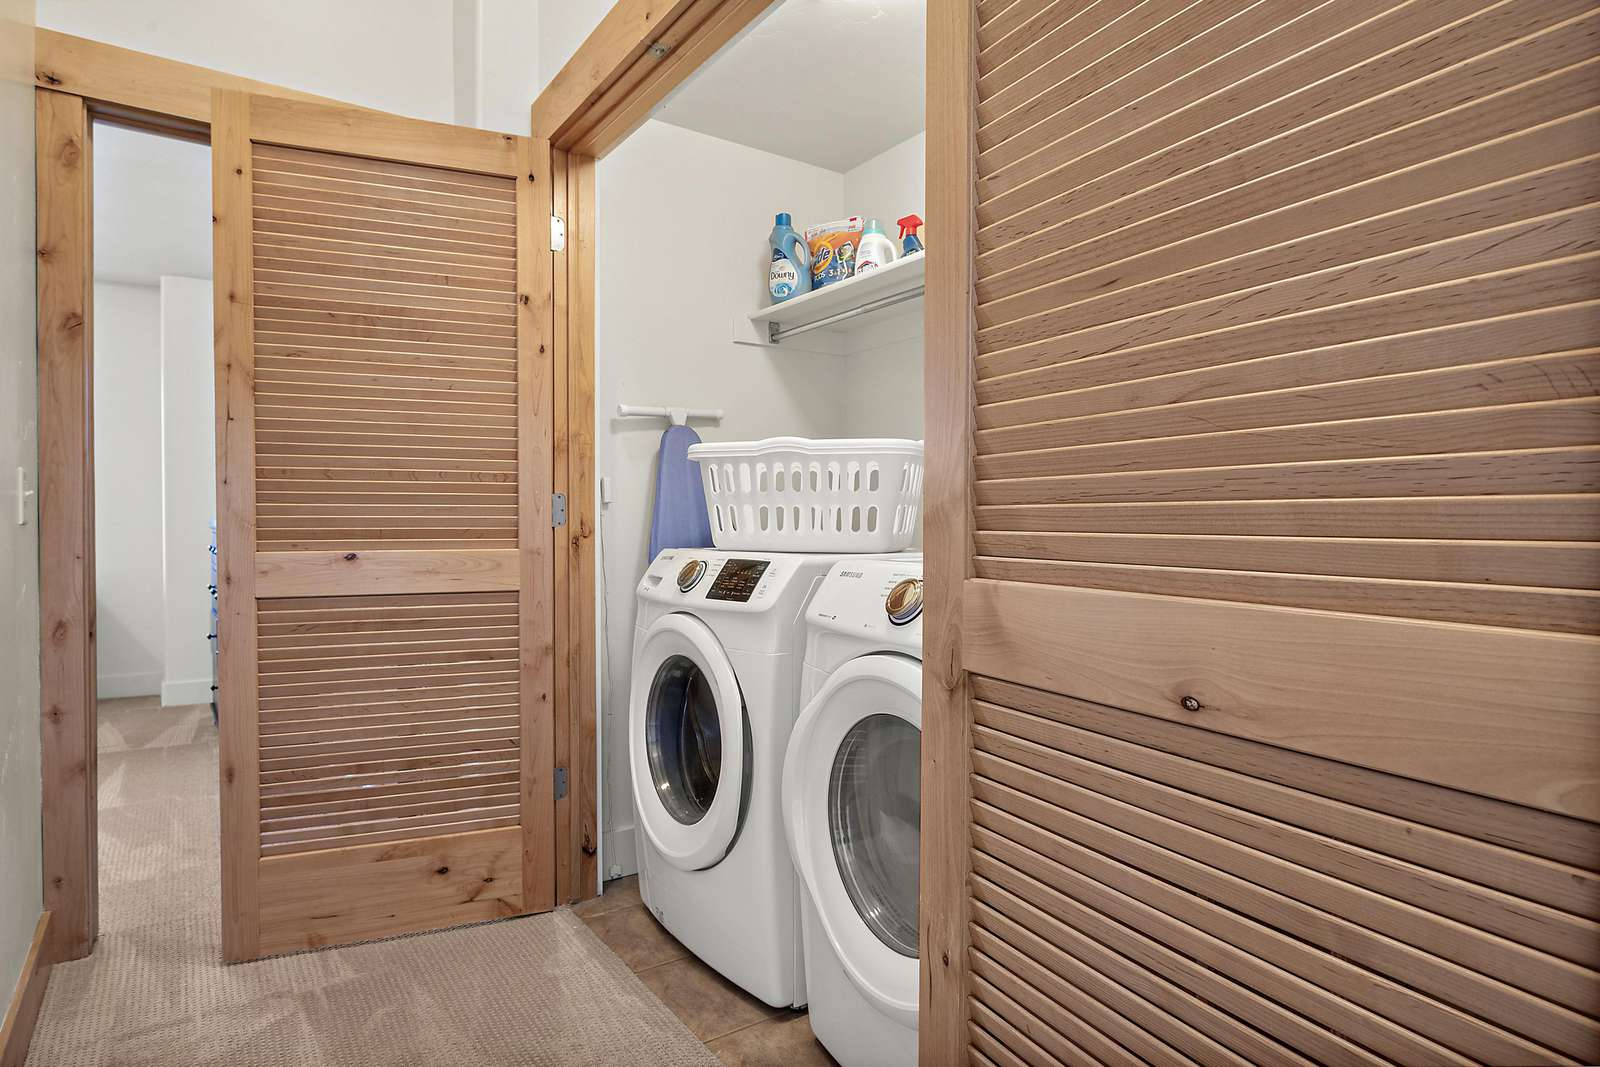 Property equipped with washer and dryer